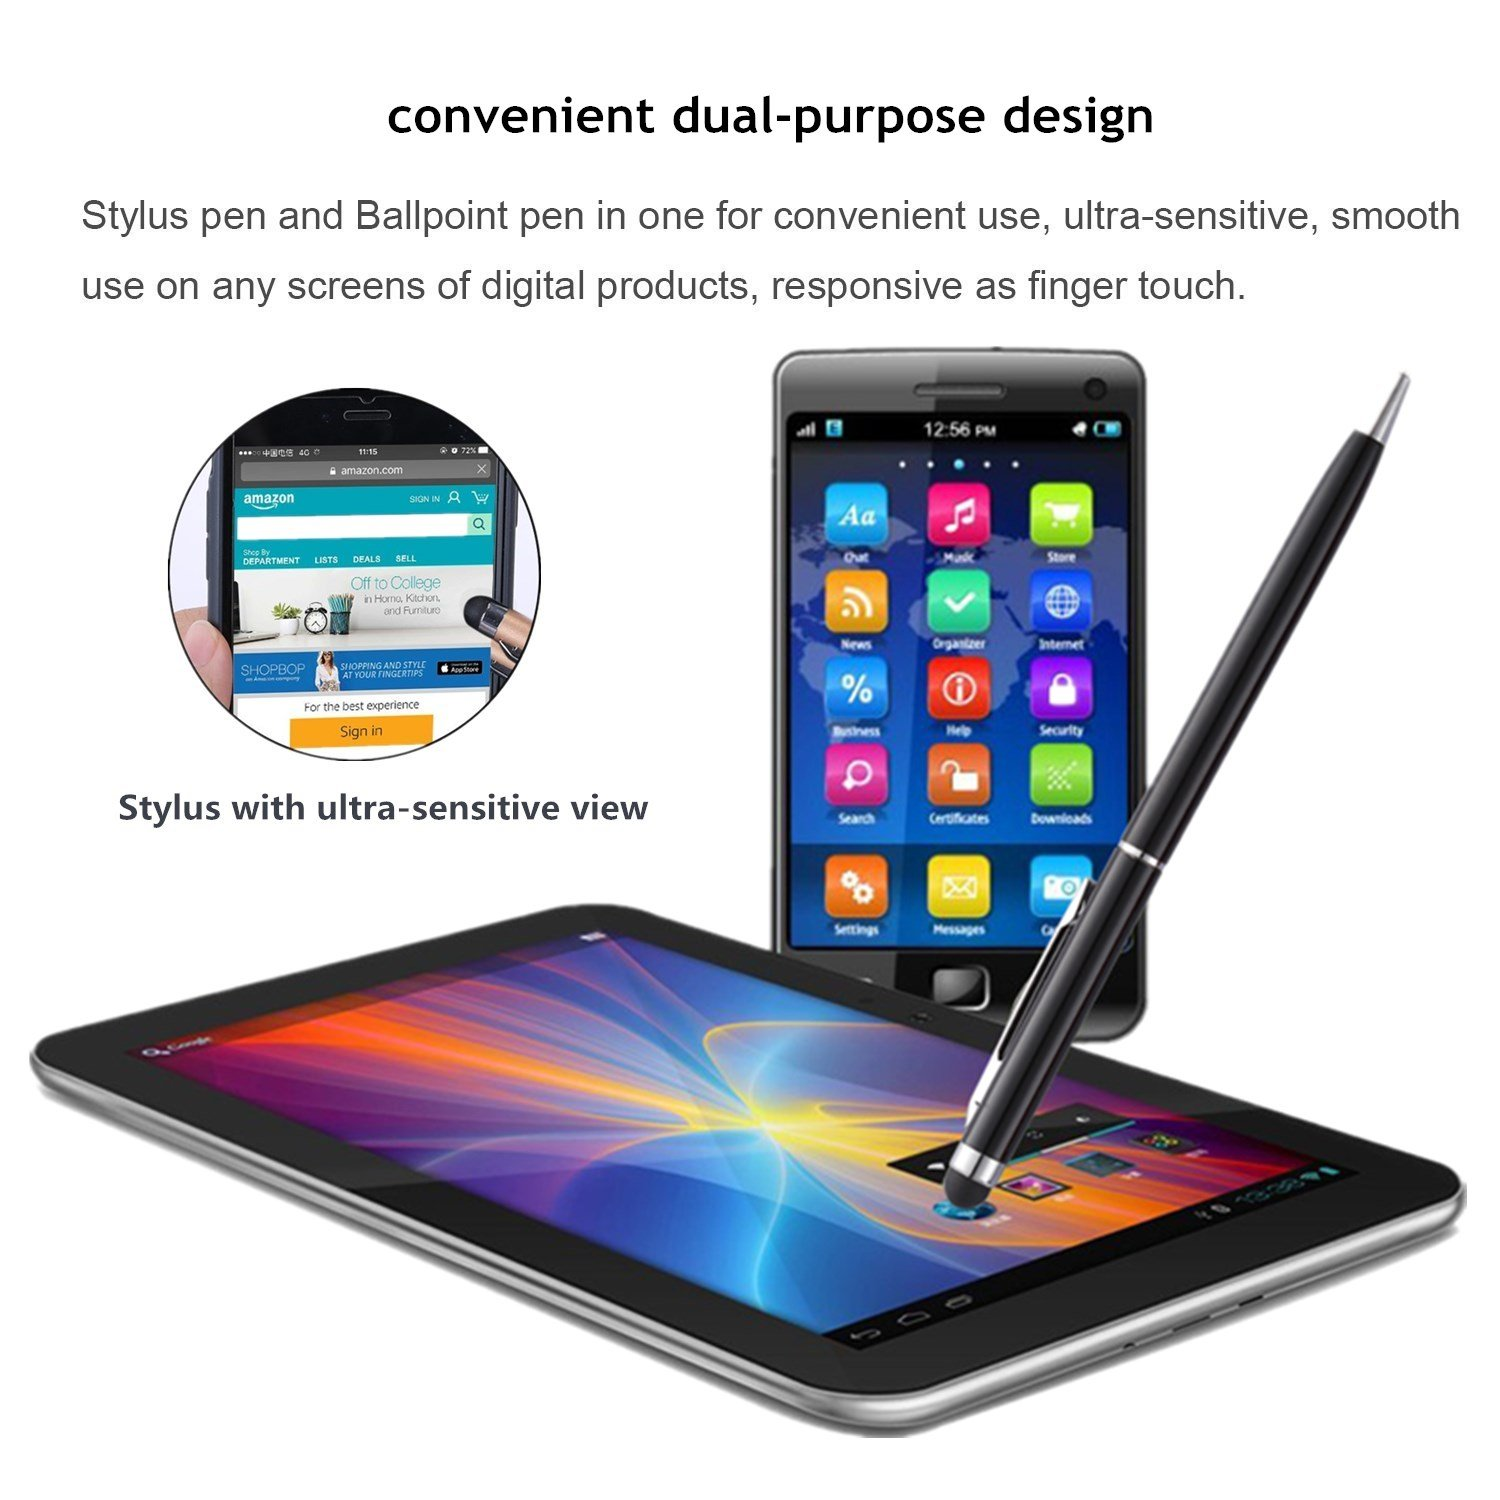 Stylus Pen for iPad anngrowy Stylus Pens for Tablets 2 in 1 Slim Capacitive Ballpoint Pen for Mobile Phones Universal Touch Screens Devices Stylus Pens for Laptops Kindle Samsung